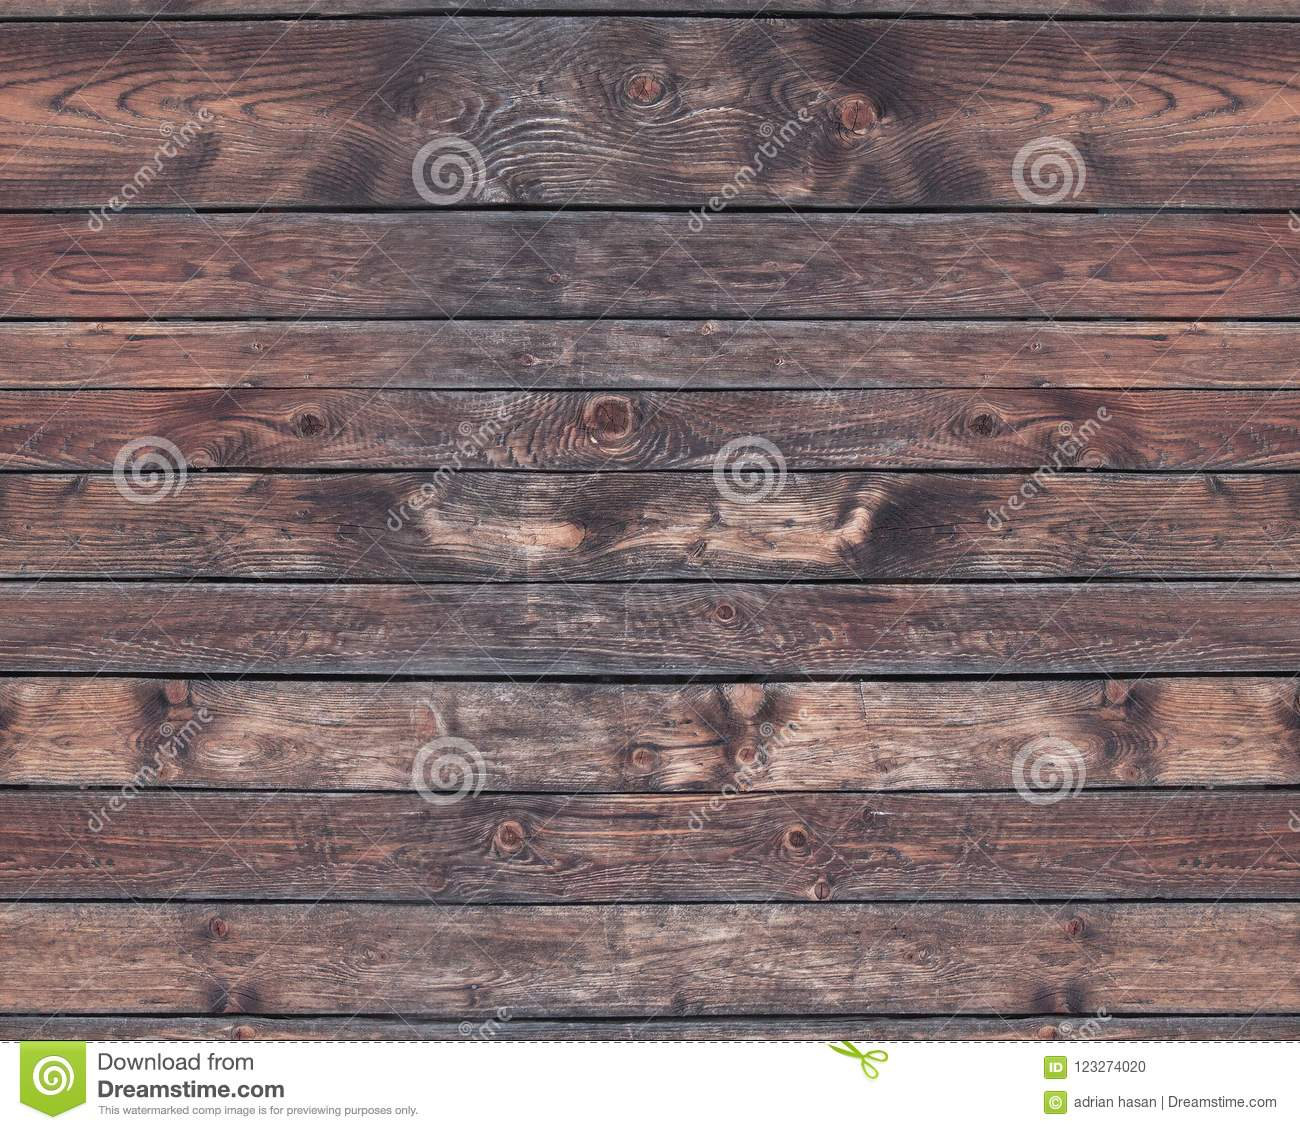 Wood Background Wallpaper Hd Stock Photo Image Of Nature Texture 123274020